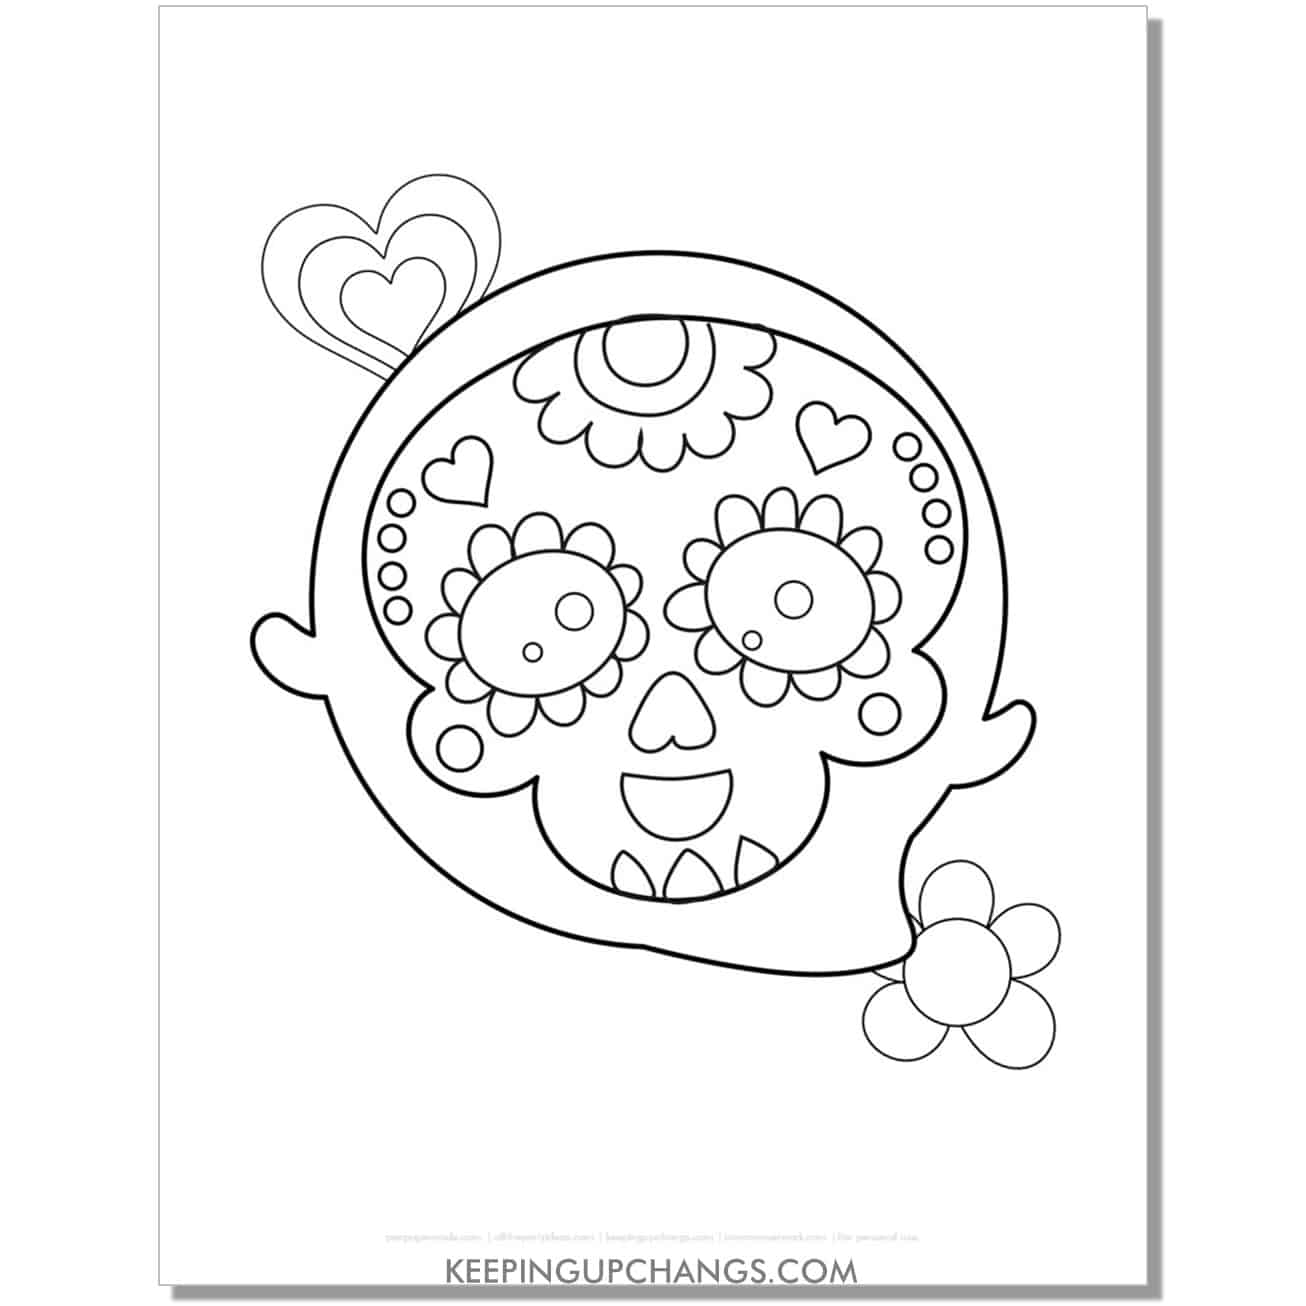 free cute sugar skull ghost coloring page.